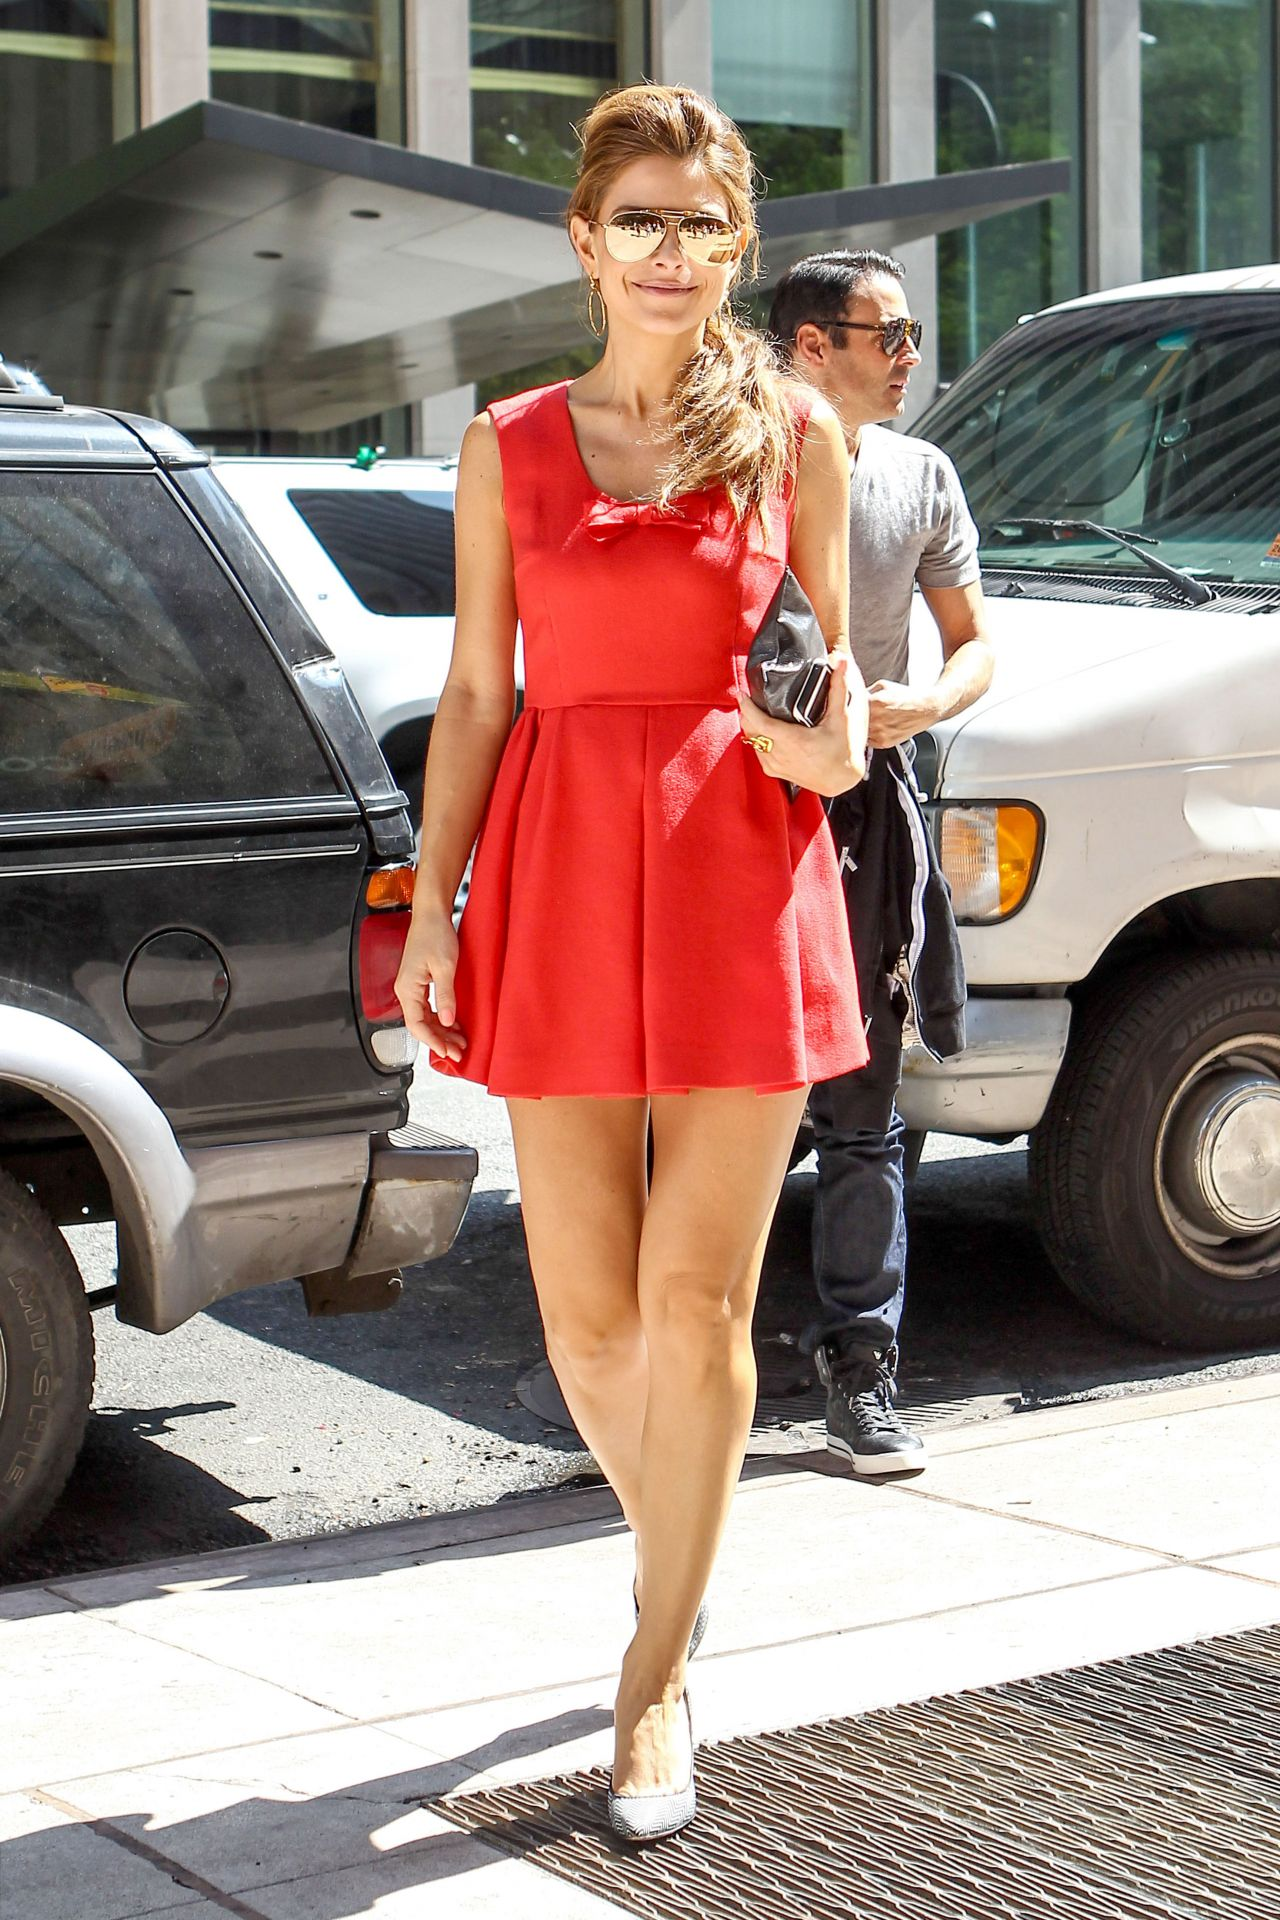 Maria Menounos Hot In Red Dress Siriusxm In New York